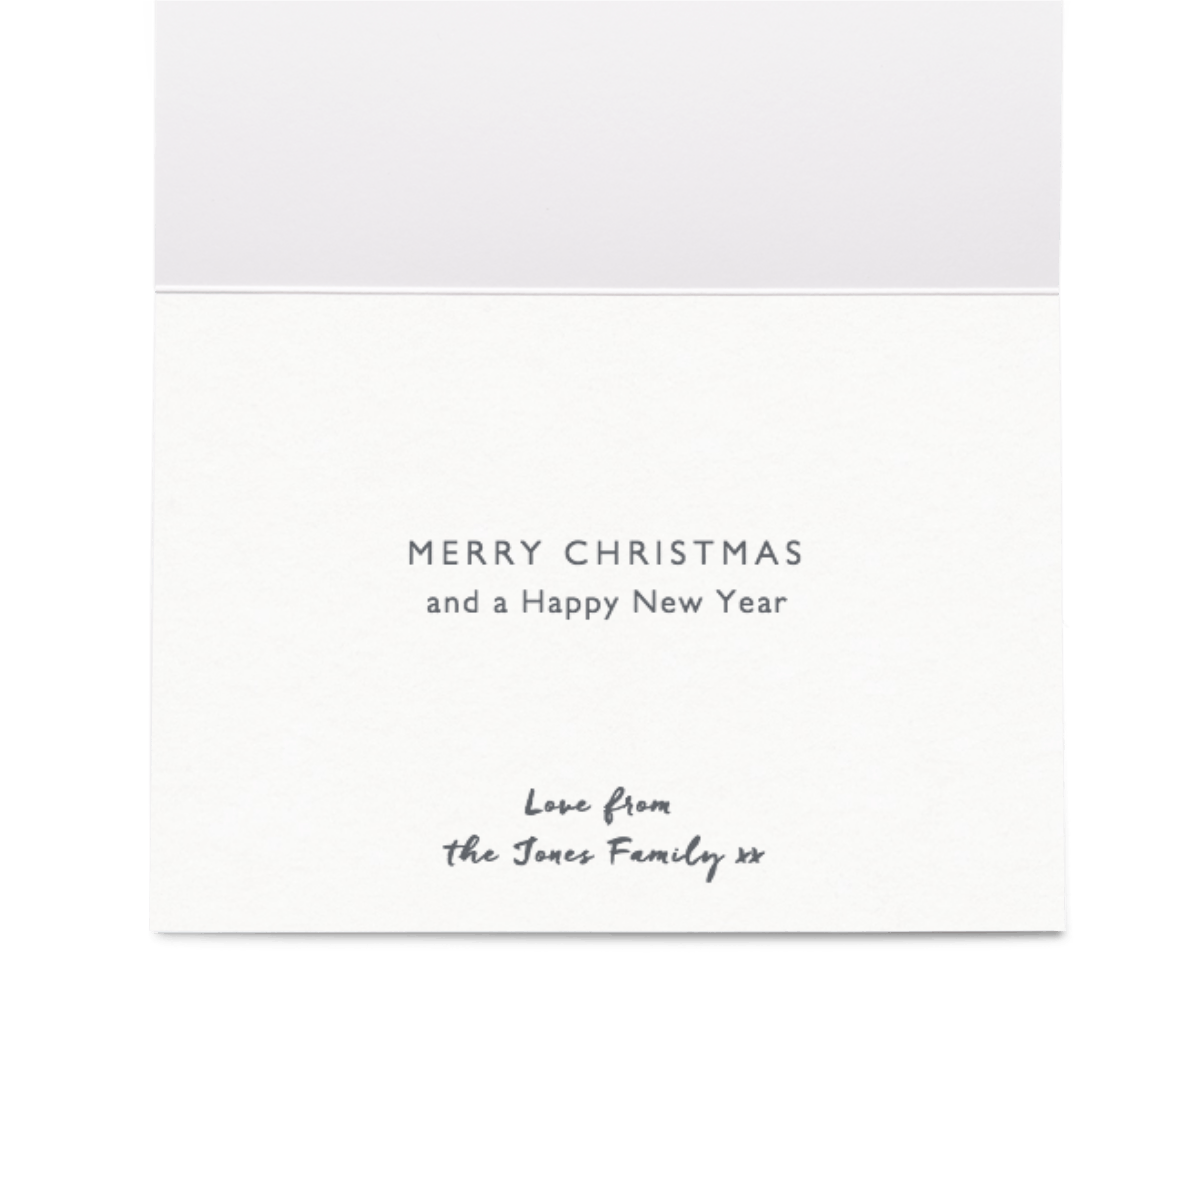 Https%3a%2f%2fwww.papier.com%2fproduct image%2f28910%2f20%2fchristmas dachshund 7261 inside 1537272541.png?ixlib=rb 1.1